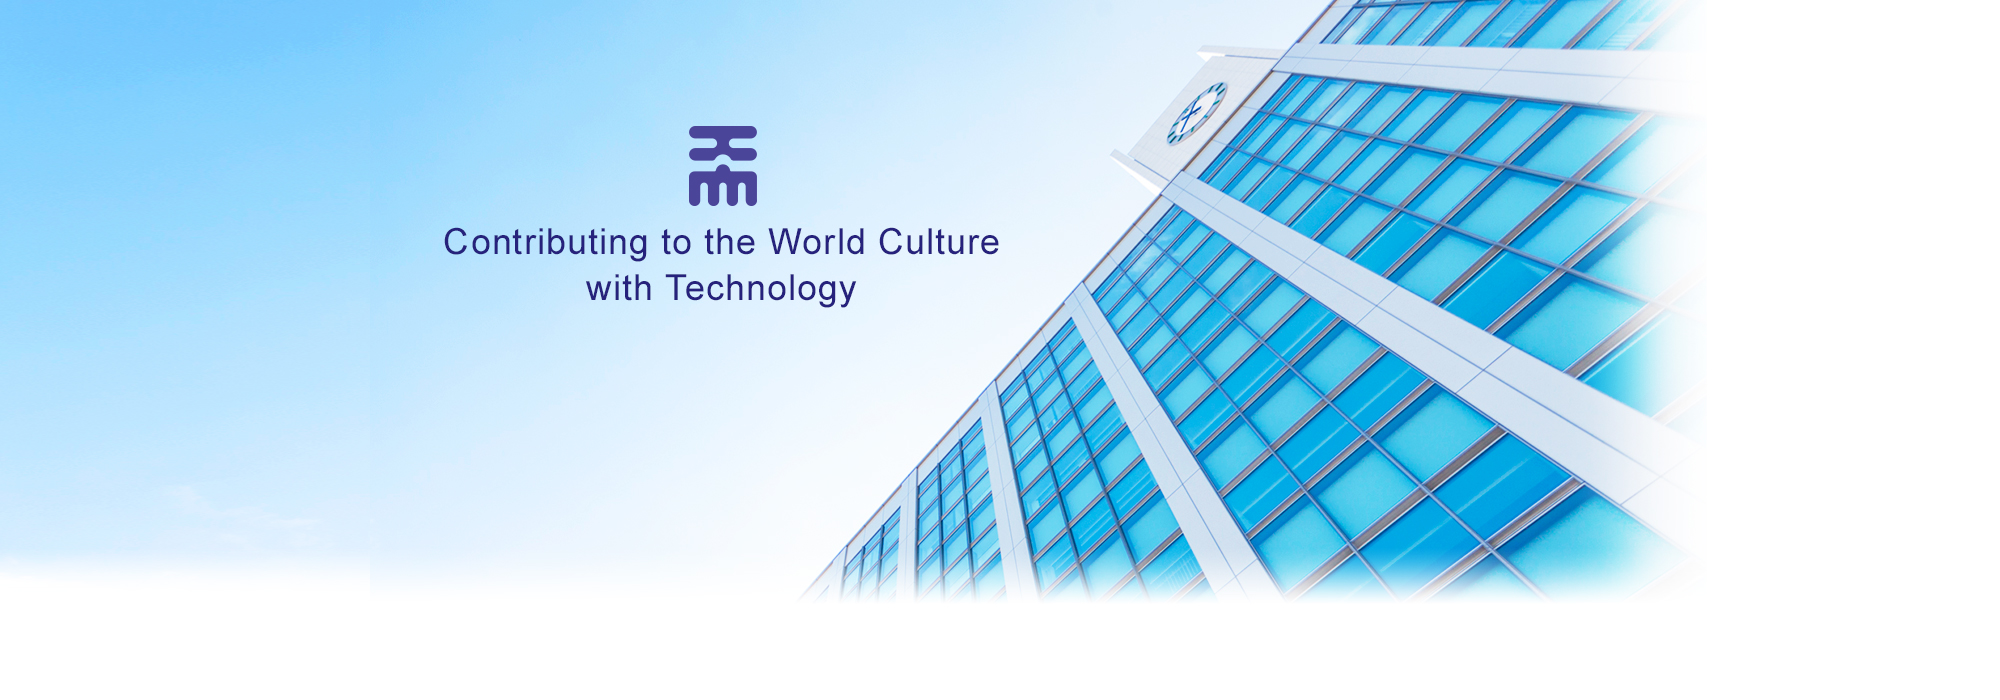 Contributing to the World Culture with Technology